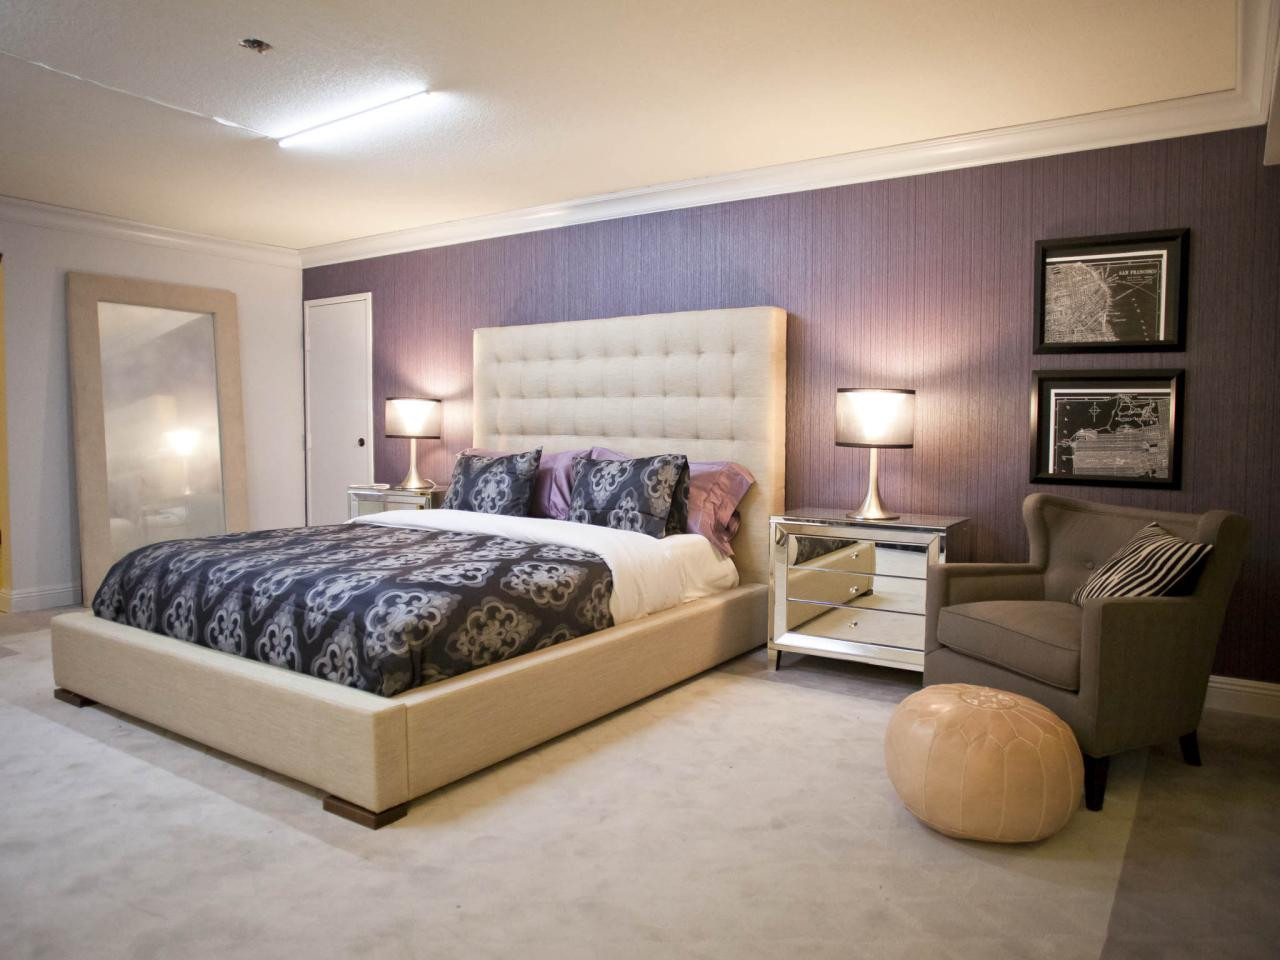 Best ideas about Rooms With Accent Walls . Save or Pin 20 Beautiful Purple Accent Wall Ideas Now.